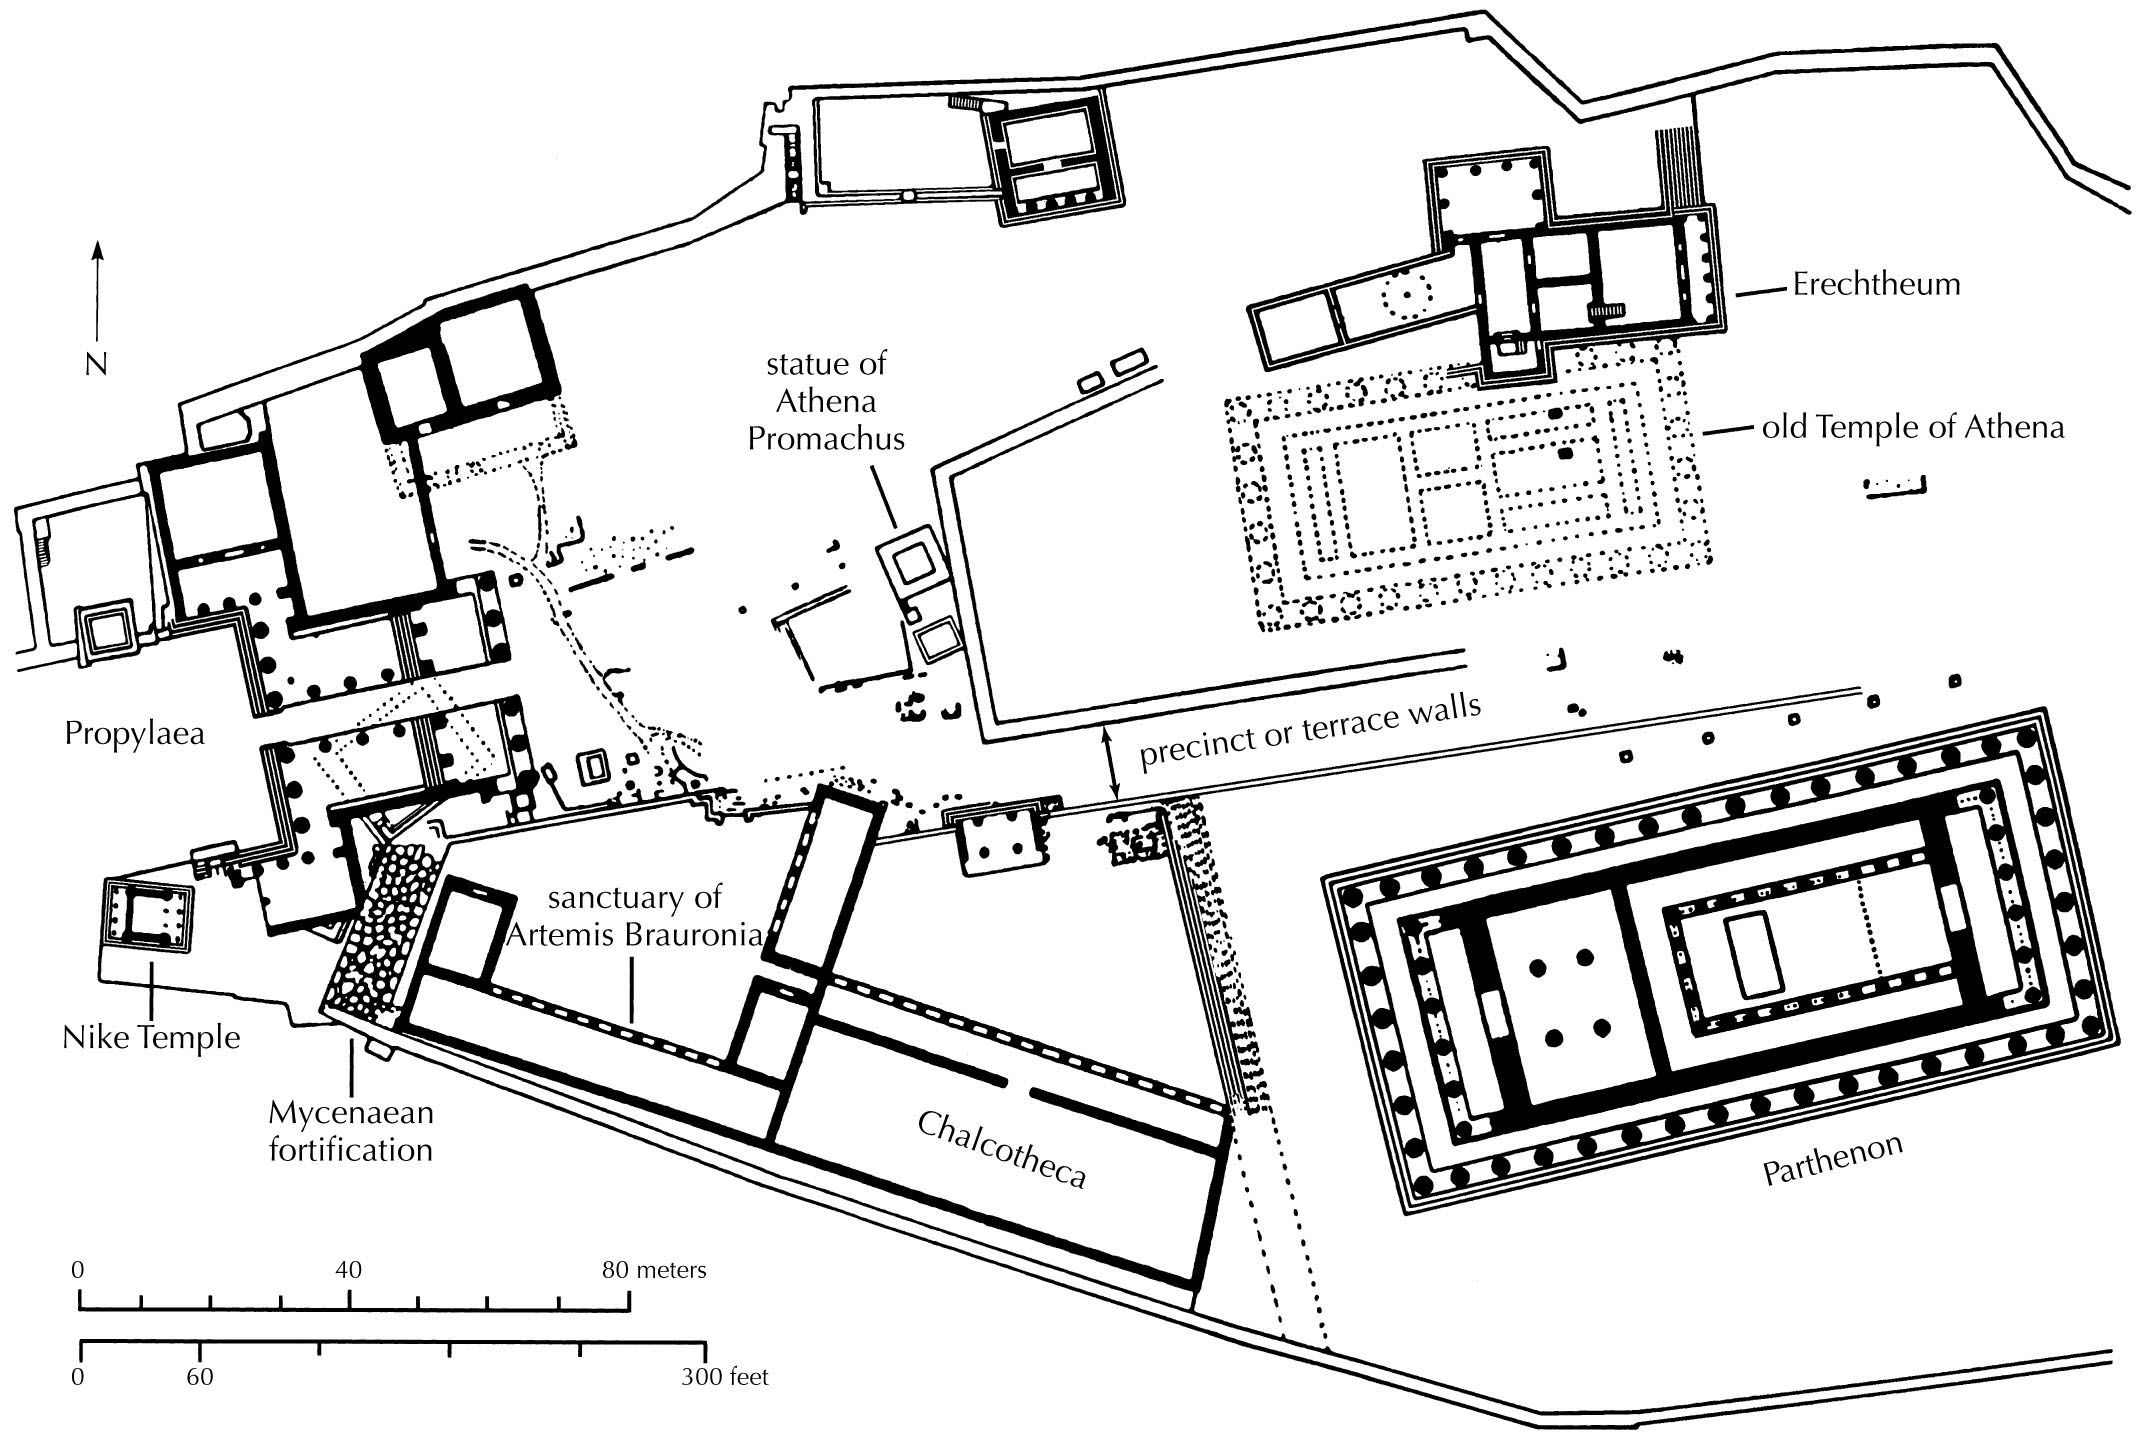 Plan Of The Akropolis At Athens In 400 Bce With Images